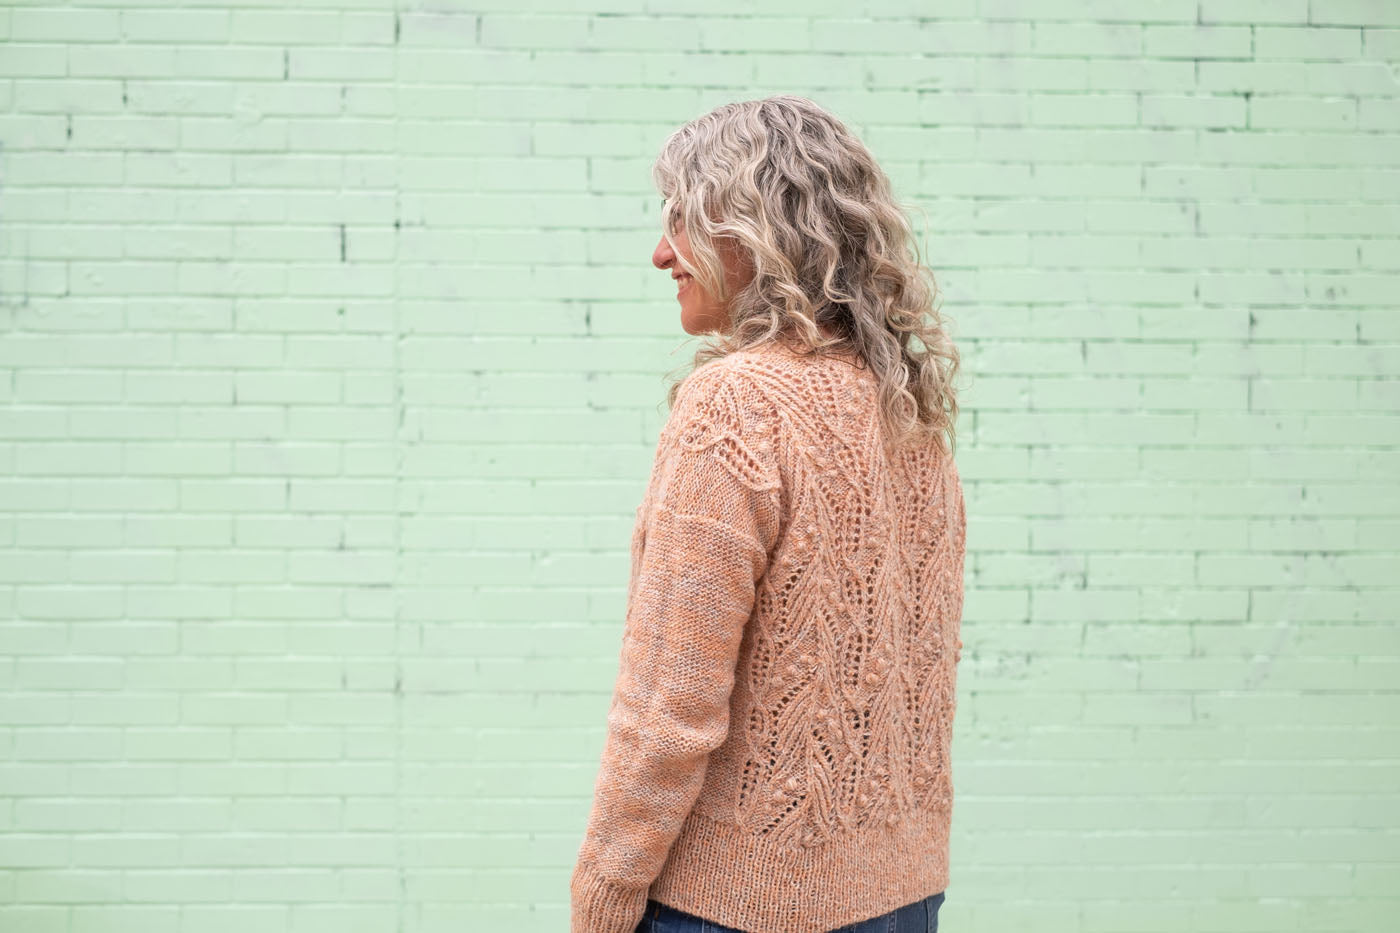 Jaime stands with her back to the camera, looking off to the side. The back of her hand-knit, peach, Icelandic wool sweater is just as intricately textures as the front.